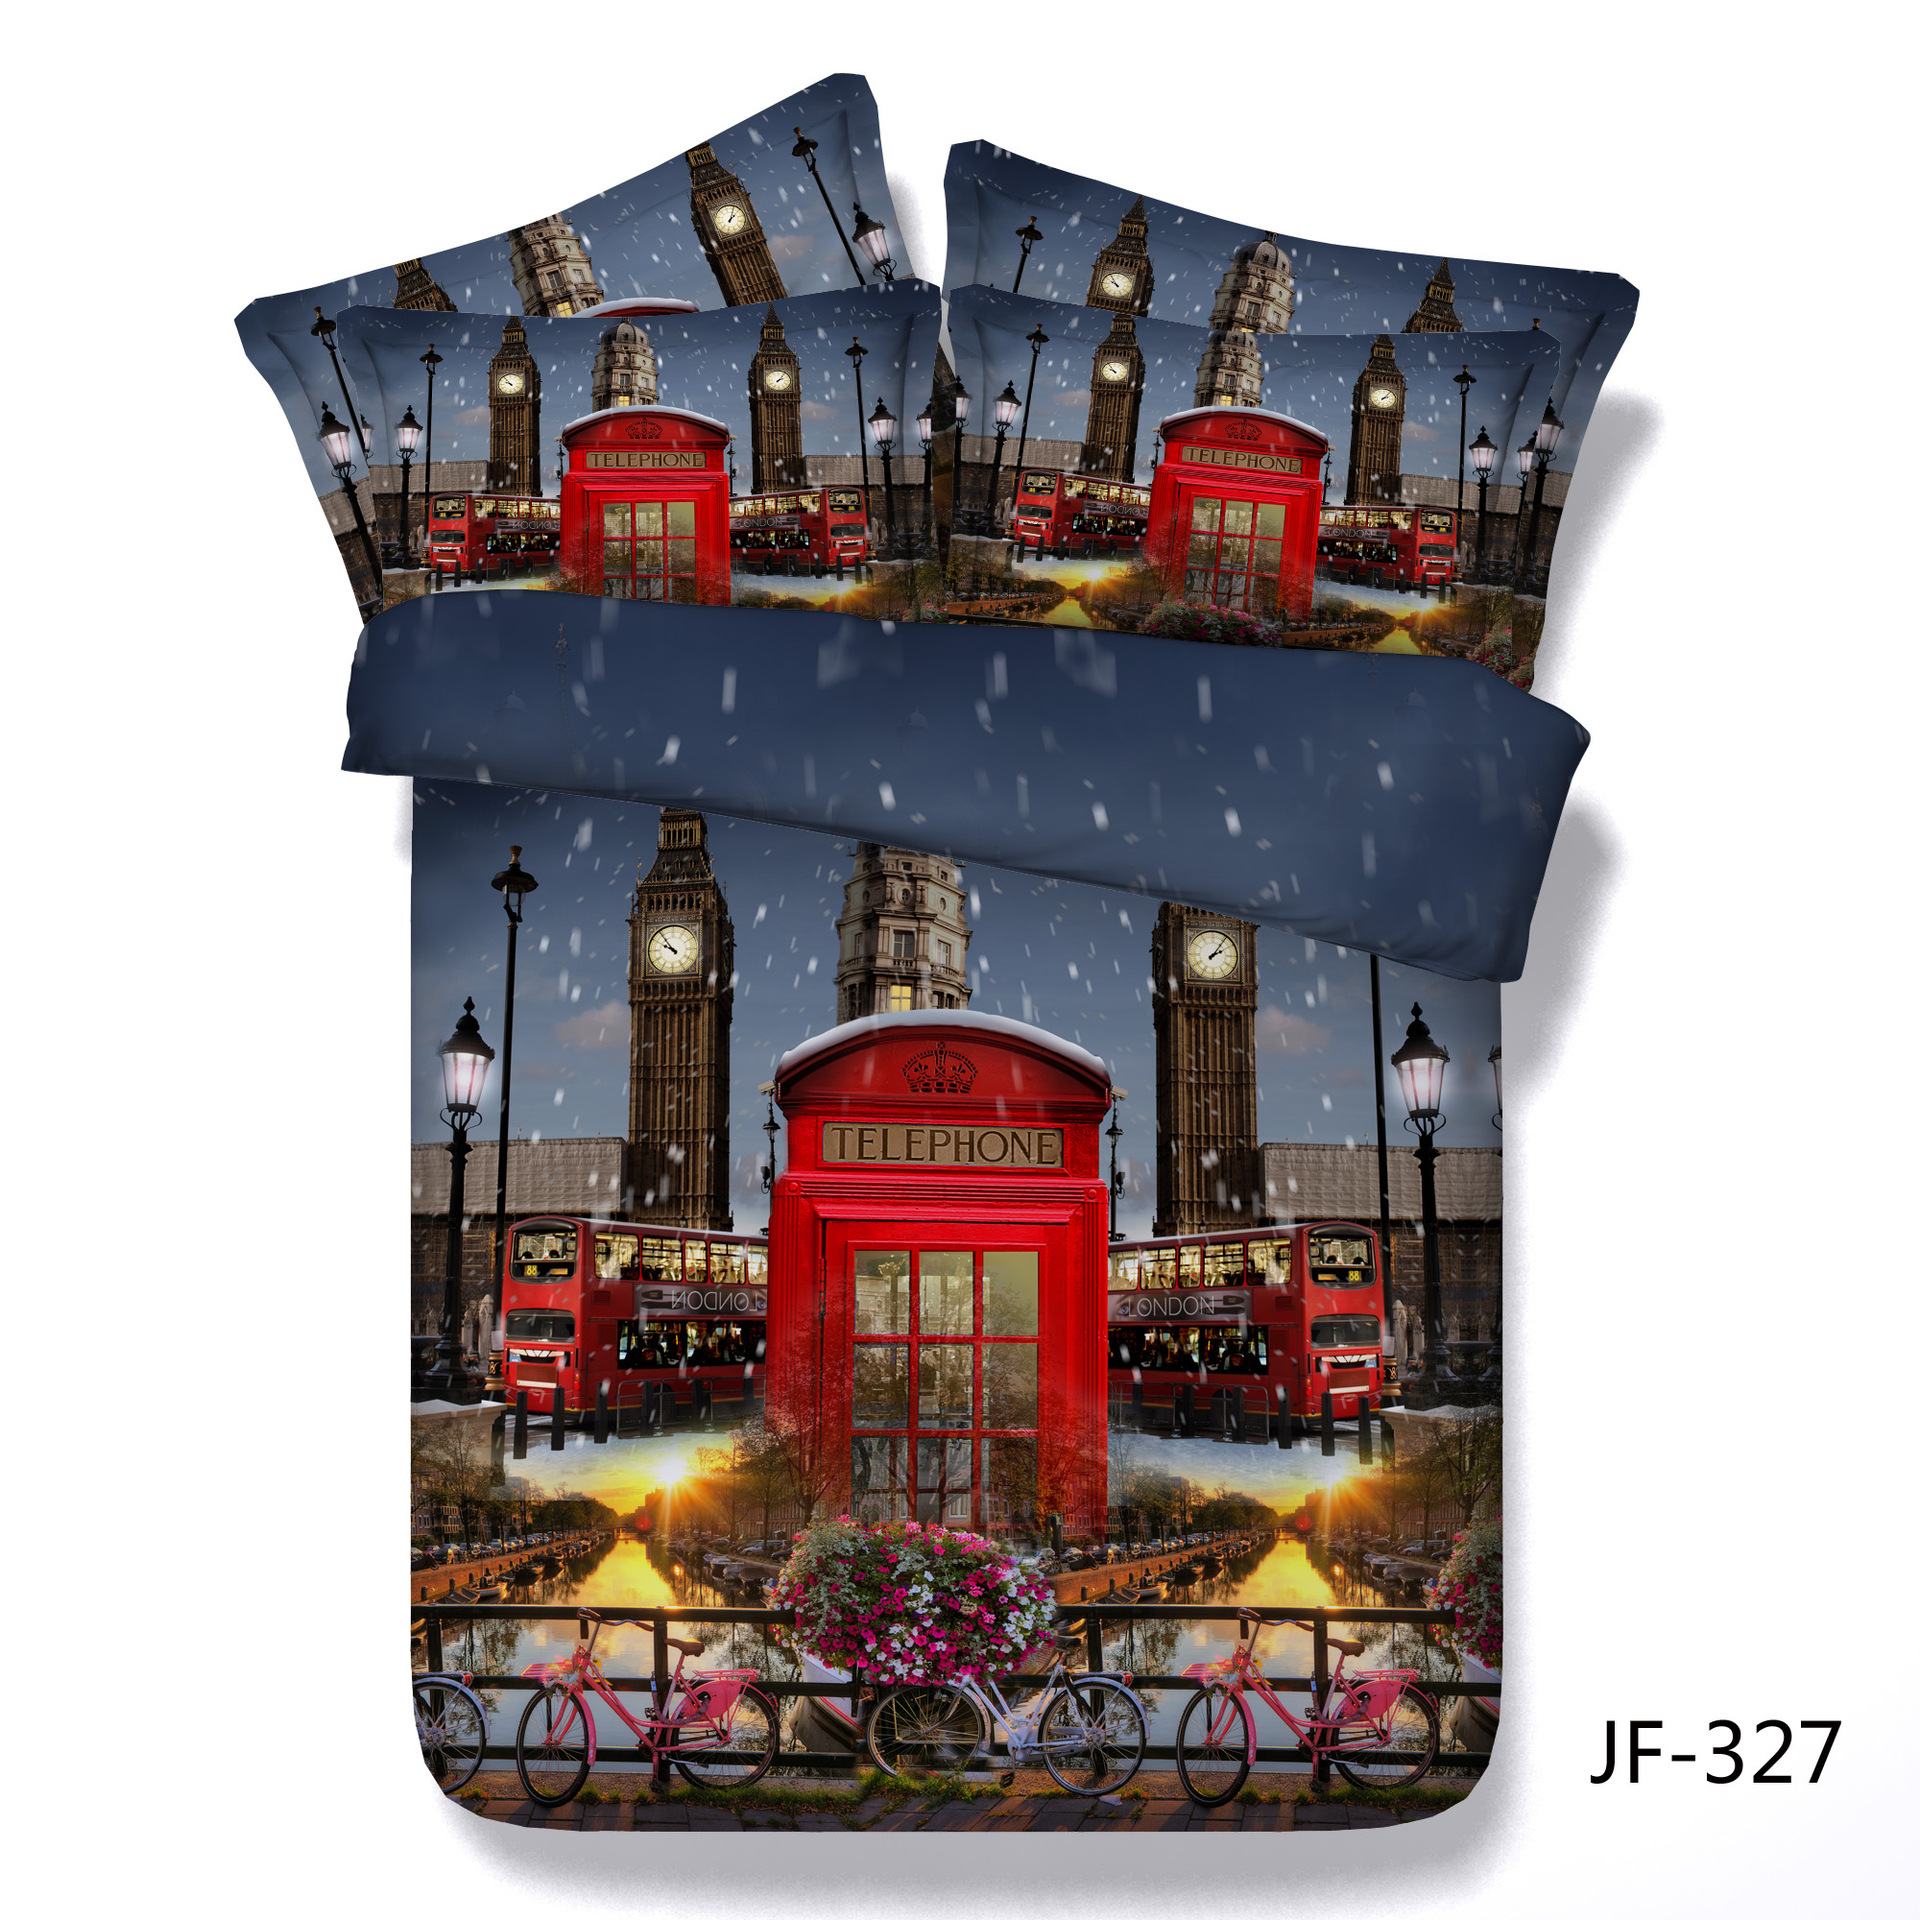 Responsible Classical London Red Double Decker Bus Printed Bedlinen Set Bed Duvet Set Cotton Quilt Covers Super King Size Bedding Sets 3d Diversified In Packaging Power Source